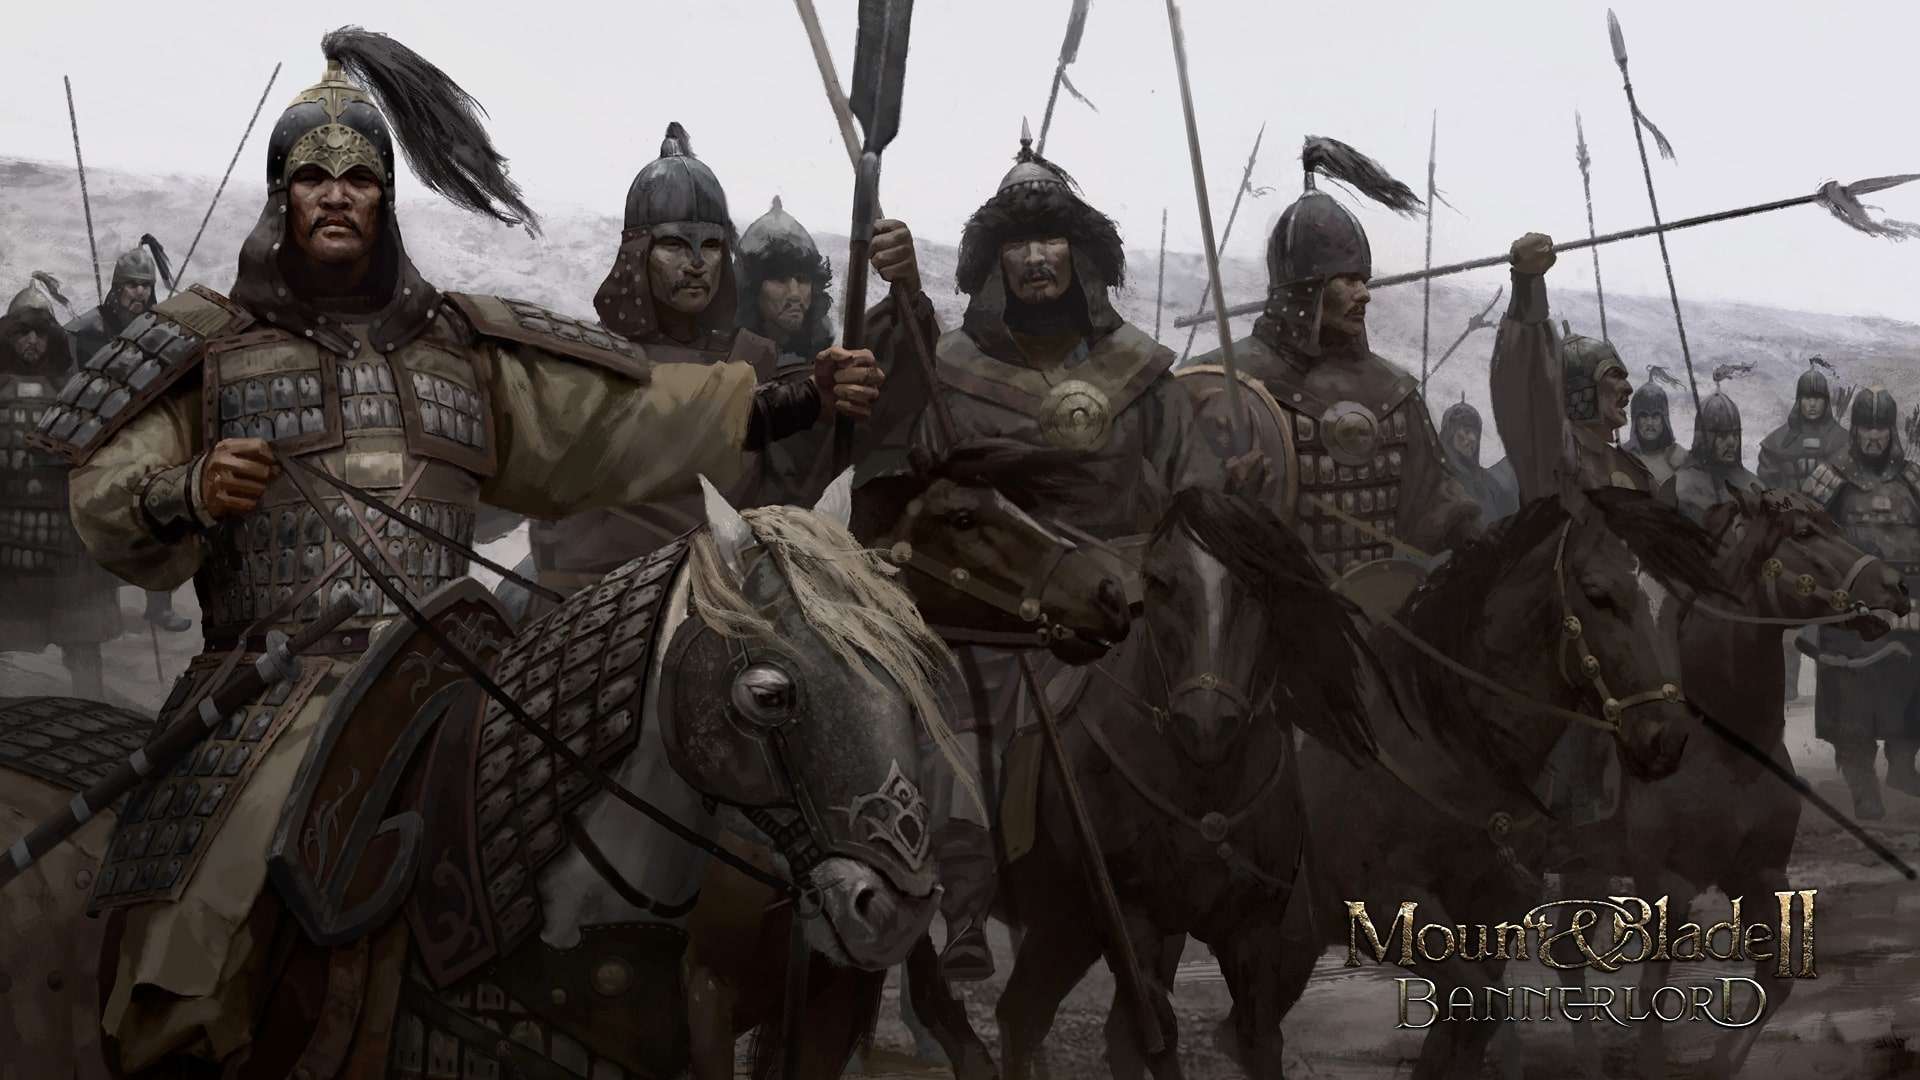 Mount Blade 2 Bannerlord Hd Wallpapers 7wallpapers Net